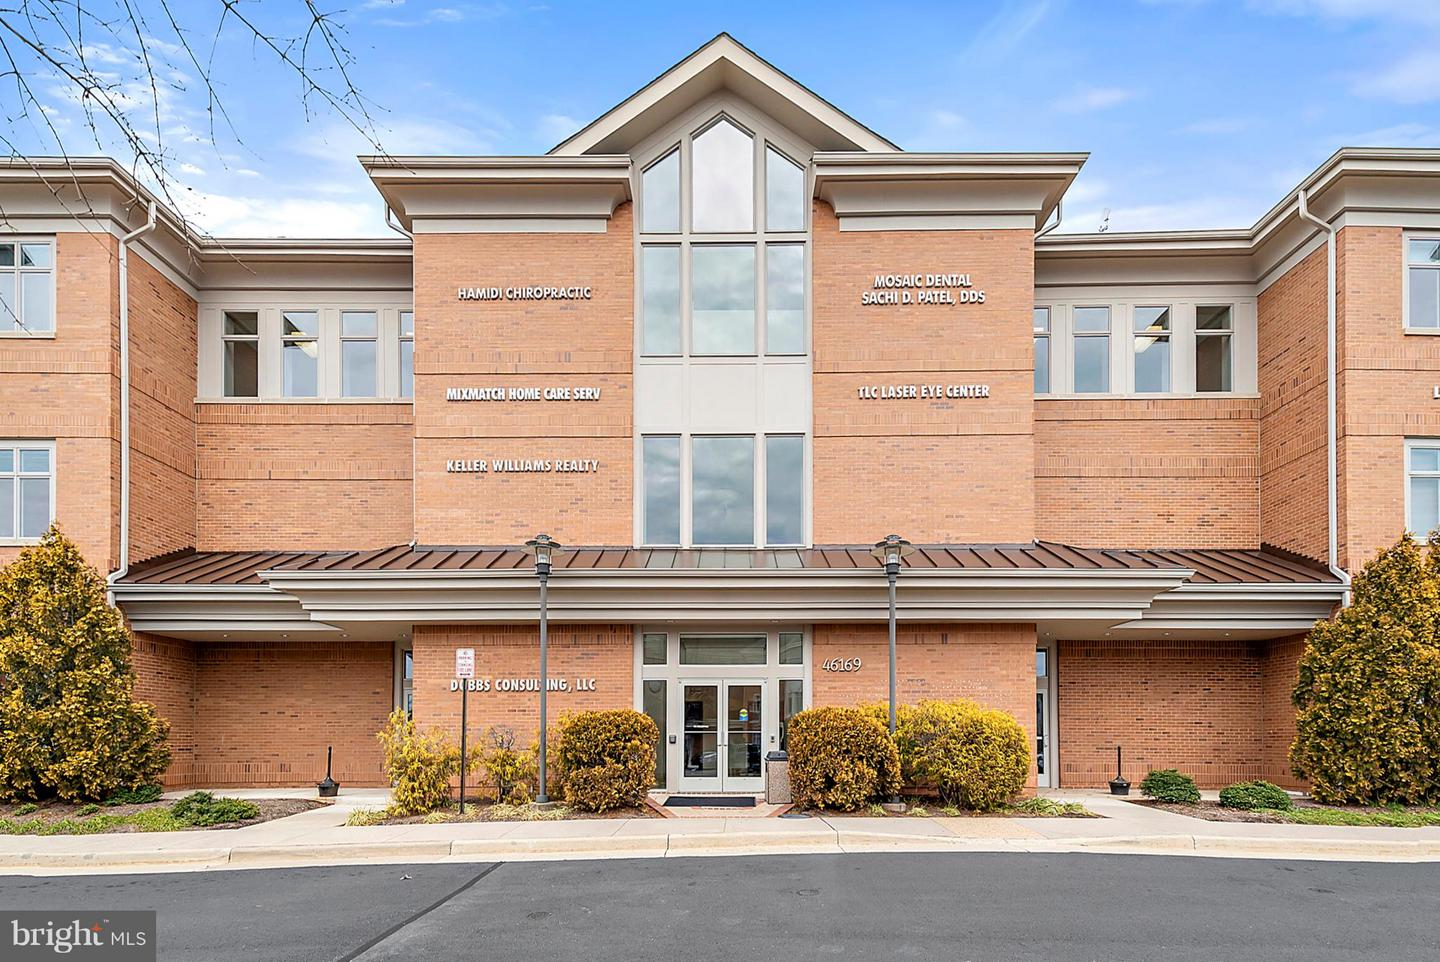 Additional photo for property listing at 46169 Westlake Dr #200, 210 Sterling, Virginia 20165 United States